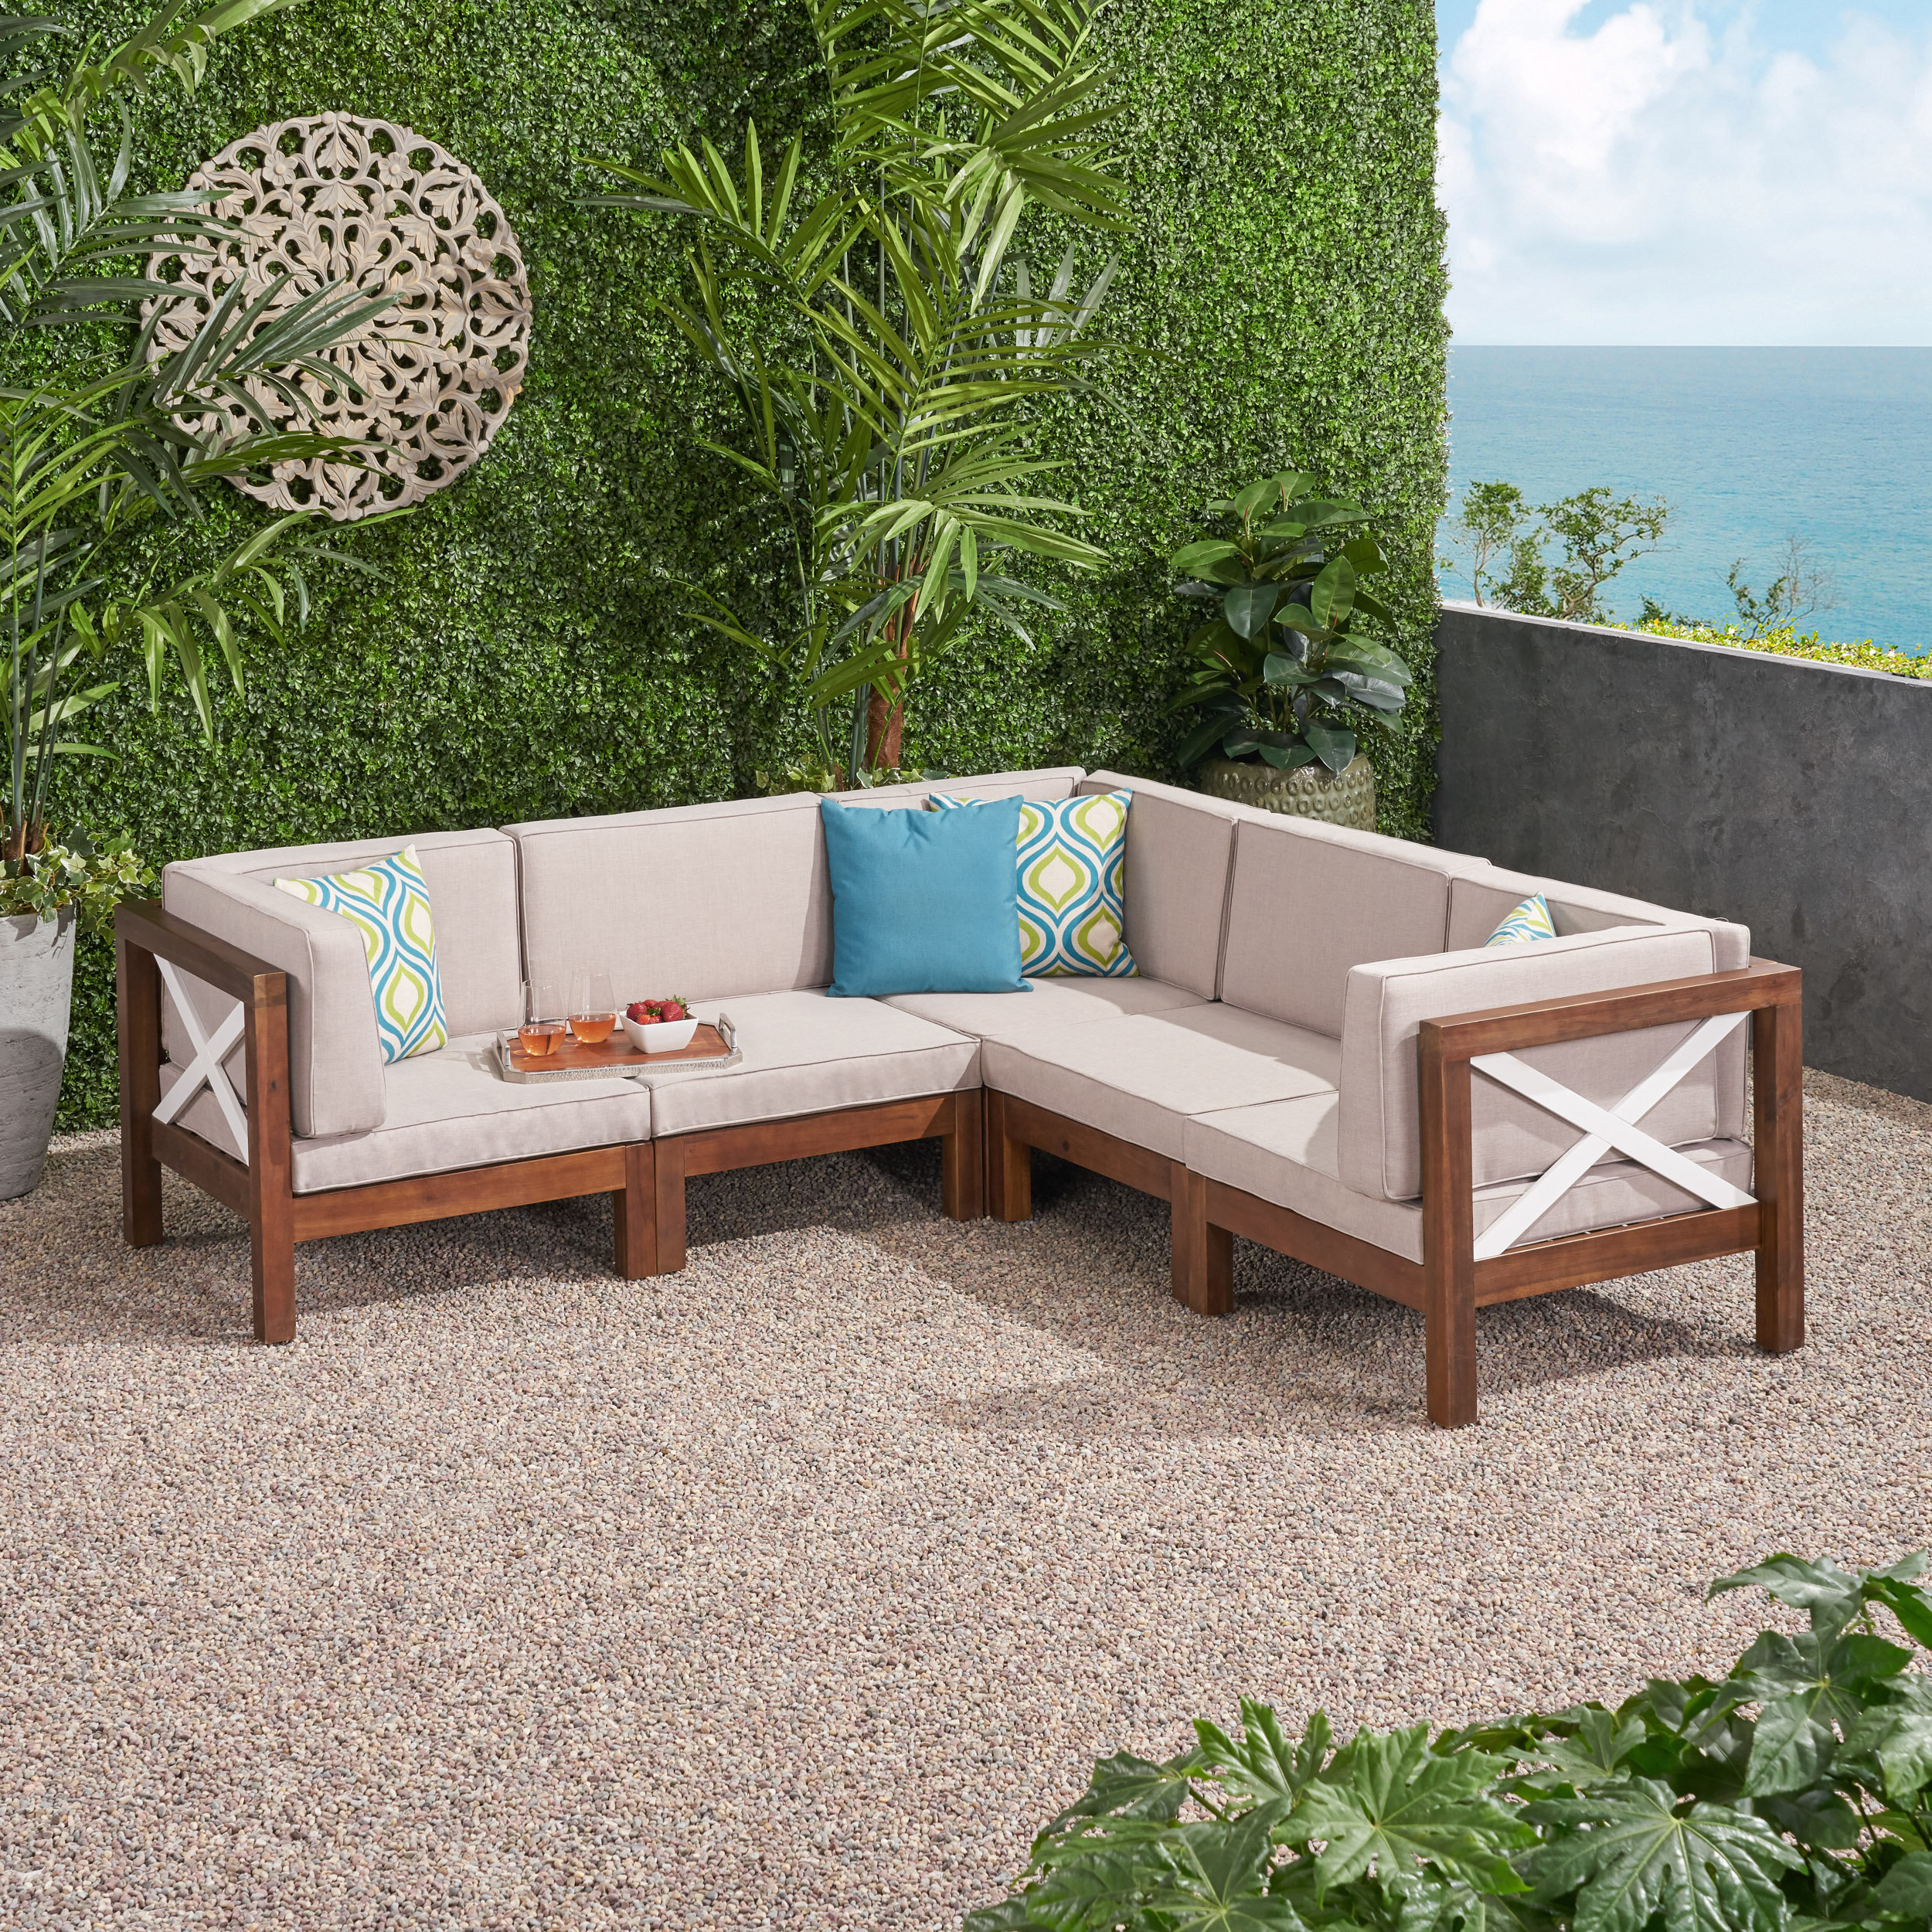 Greta Living Patio Sectionals With Cushions With Well Liked Breakwater Bay Patel Outdoor Patio Sectional With Cushions (View 7 of 20)